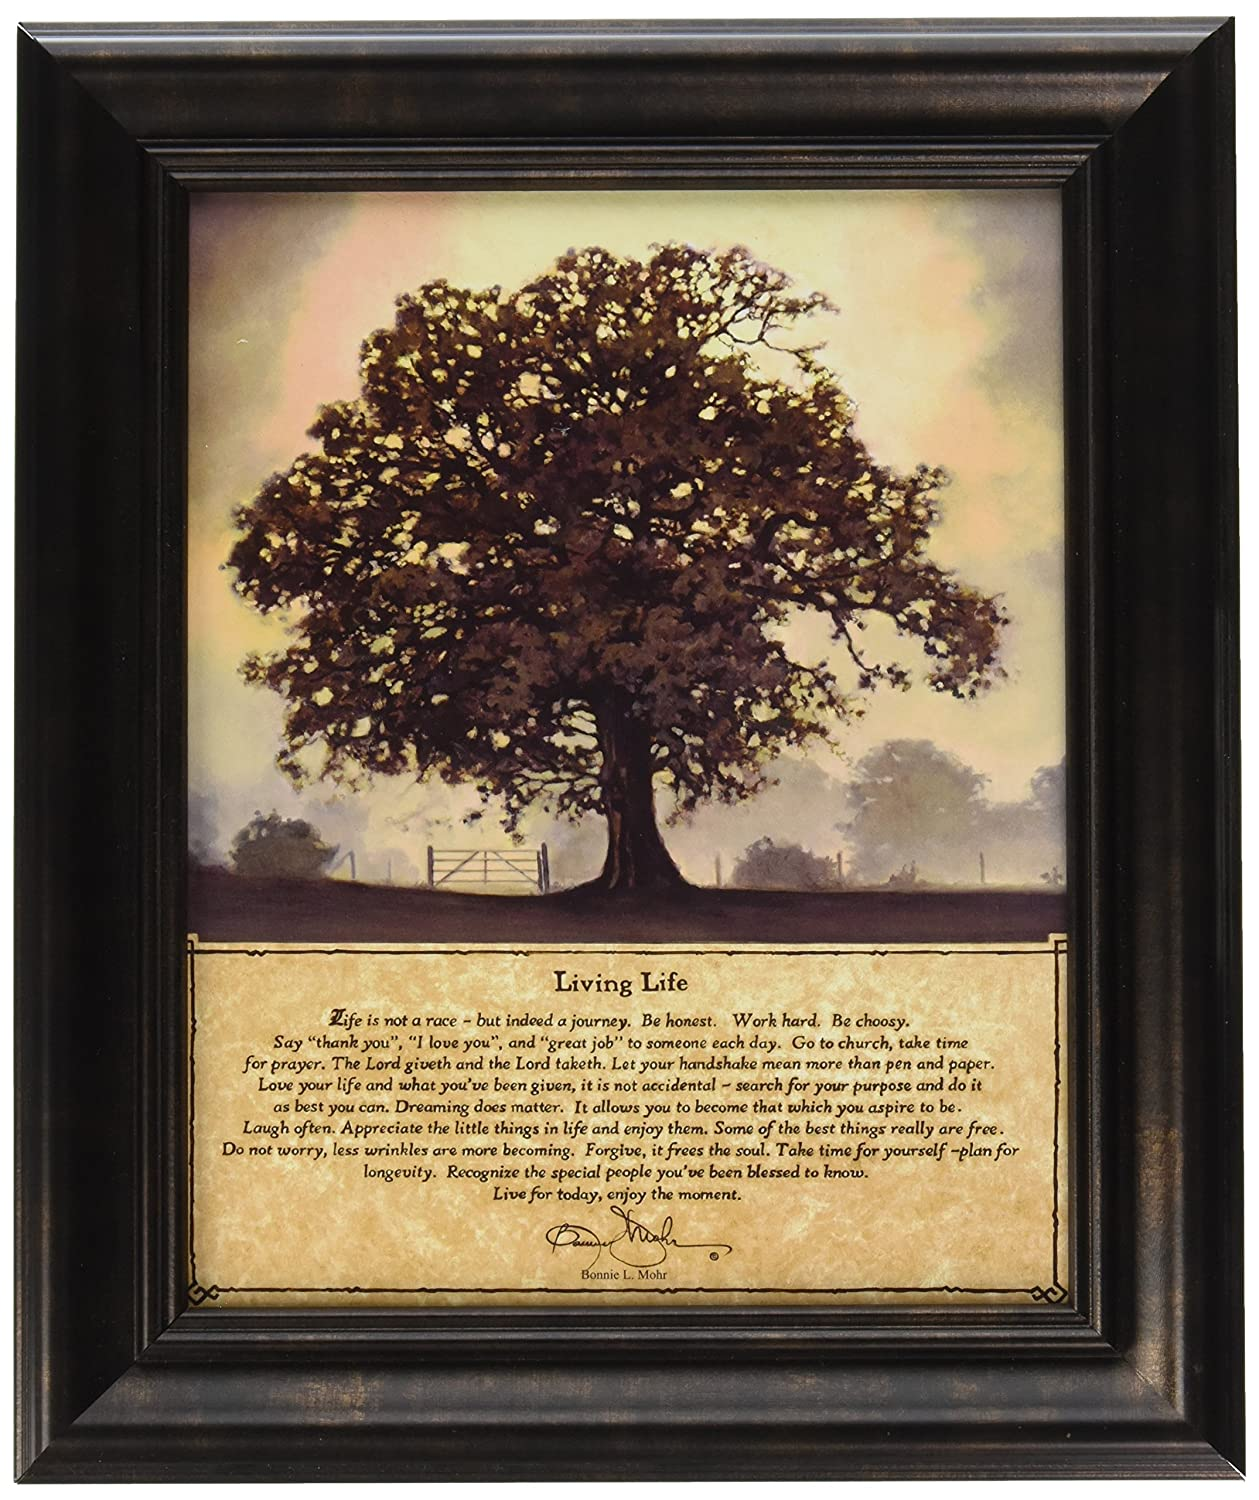 19 X 23 Inches Artistic Reflections P241 Living Life Framed Art By Bonnie Mohr